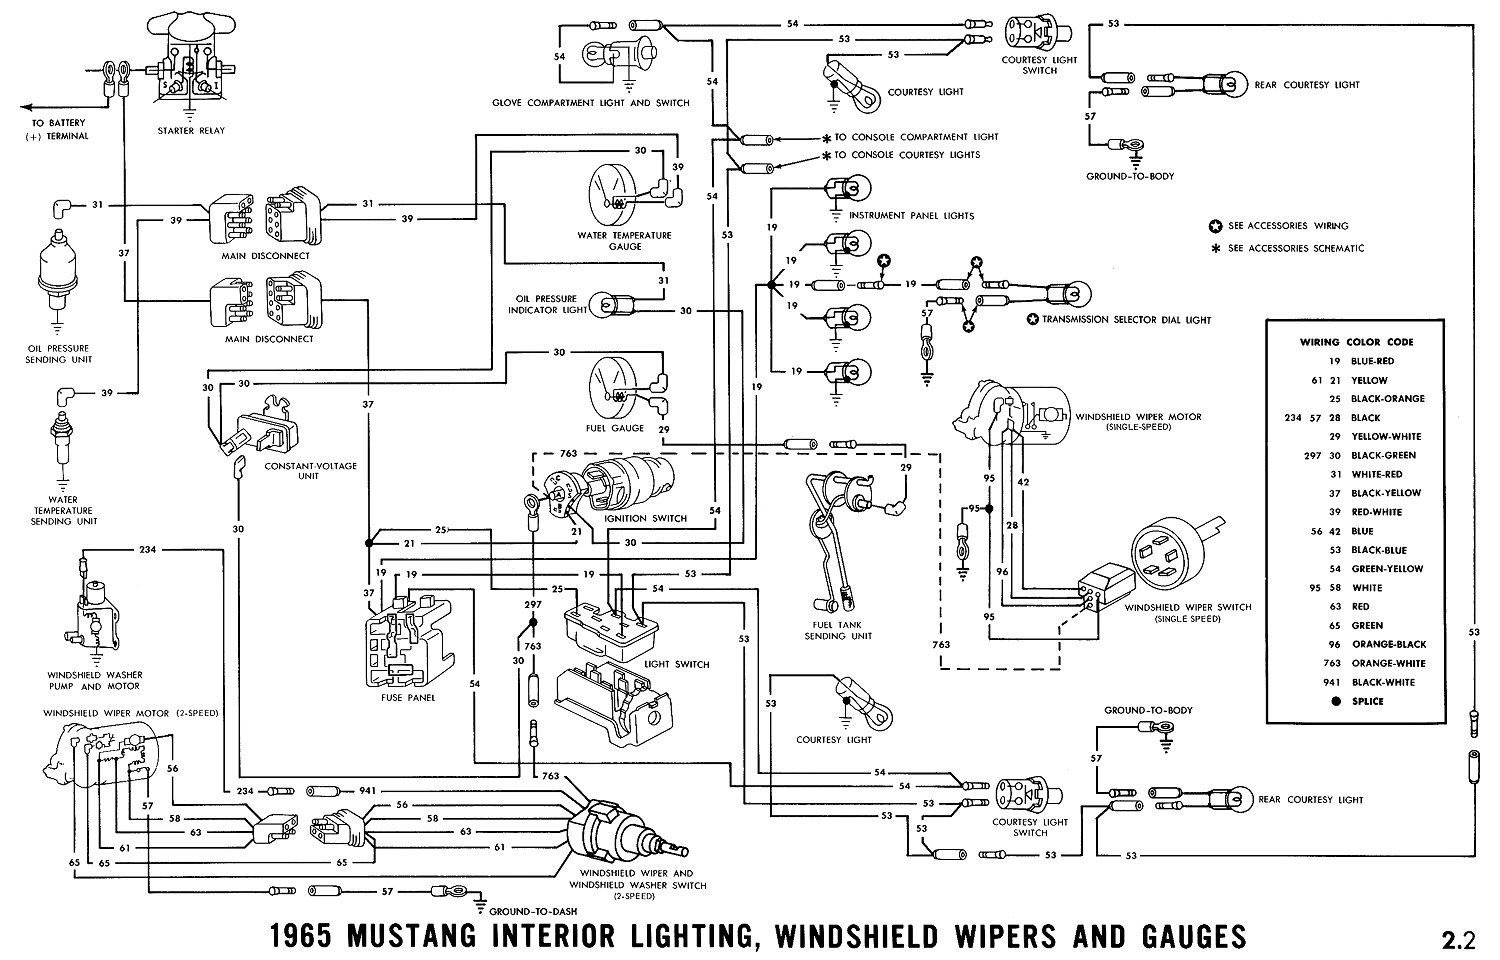 1965 mustang wiring diagrams average joe restoration rh  averagejoerestoration com 65 Mustang Wiring Harness Diagram 1965 Ford  Mustang Wiring Diagram